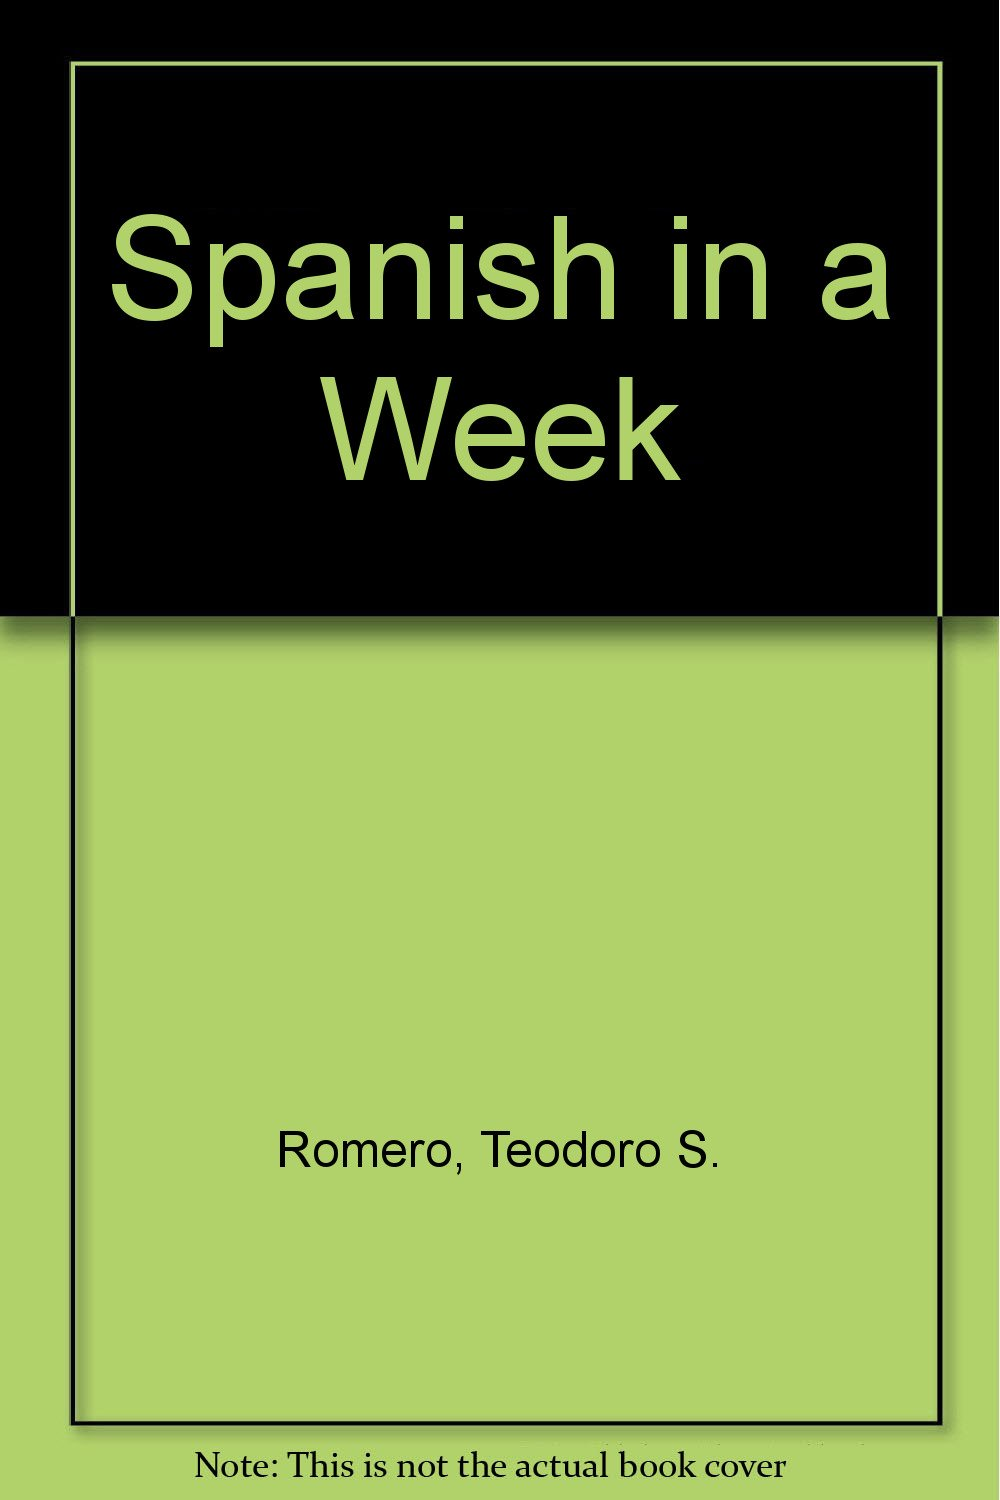 Spanish in a Week: Teodoro S. Romero: Amazon.com: Books